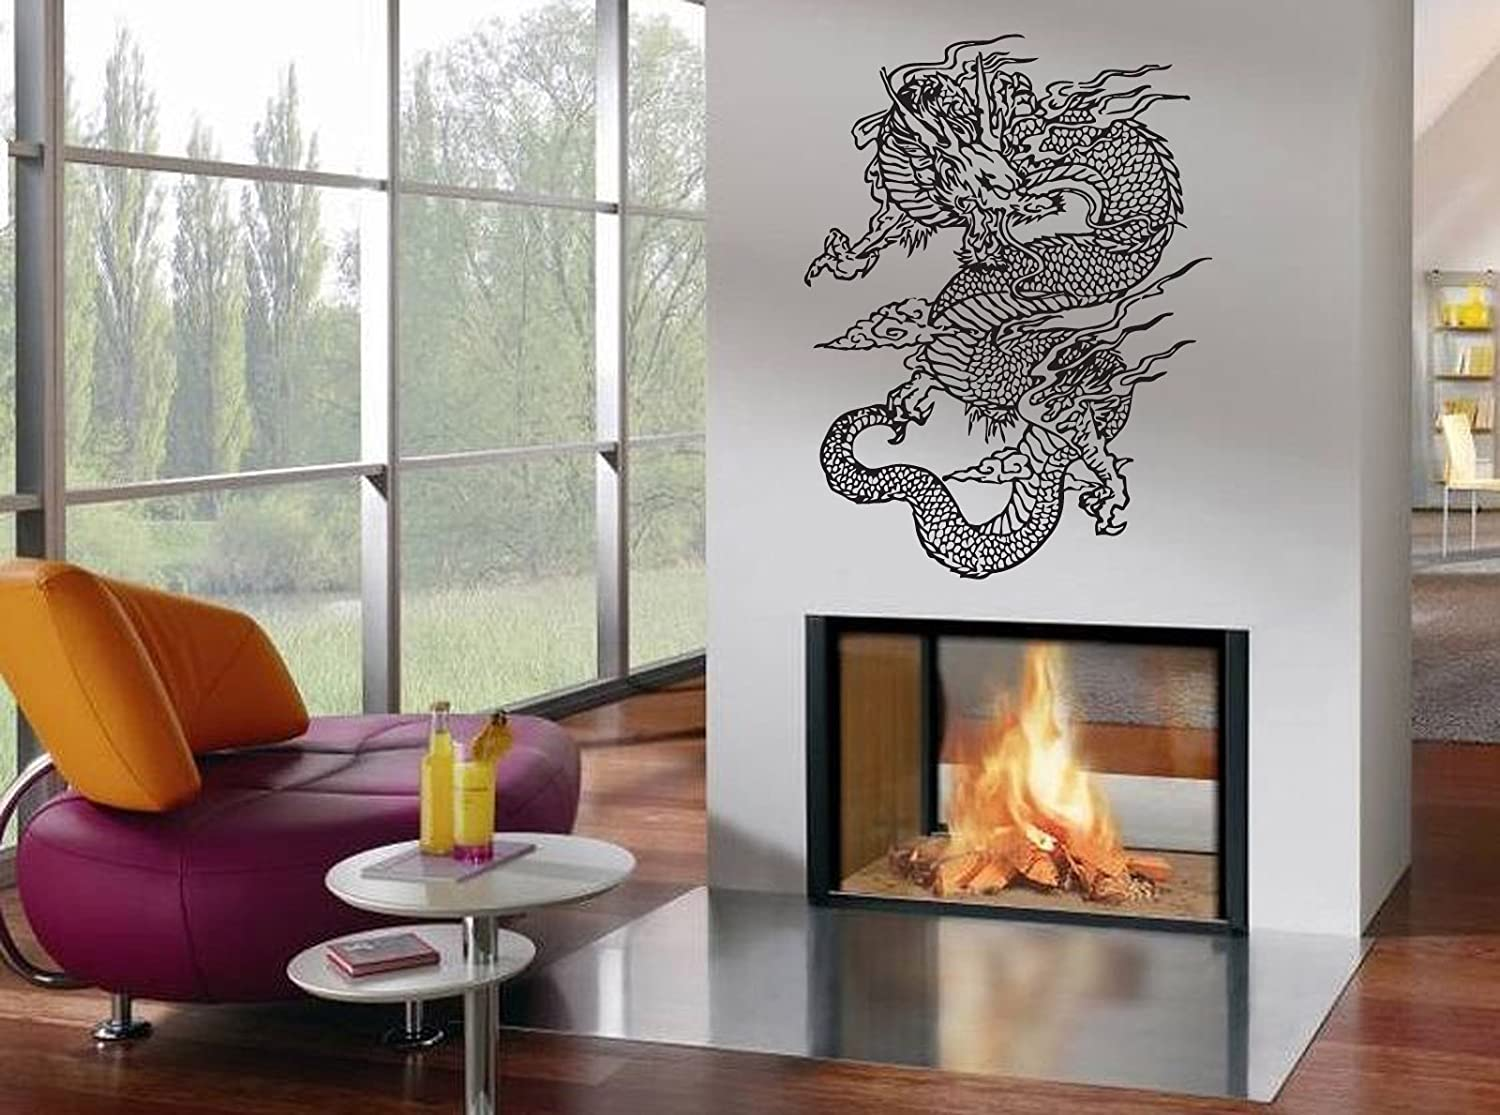 Amazon wall decor vinyl decal sticker japanese dragon tz980 amazon wall decor vinyl decal sticker japanese dragon tz980 home kitchen amipublicfo Image collections